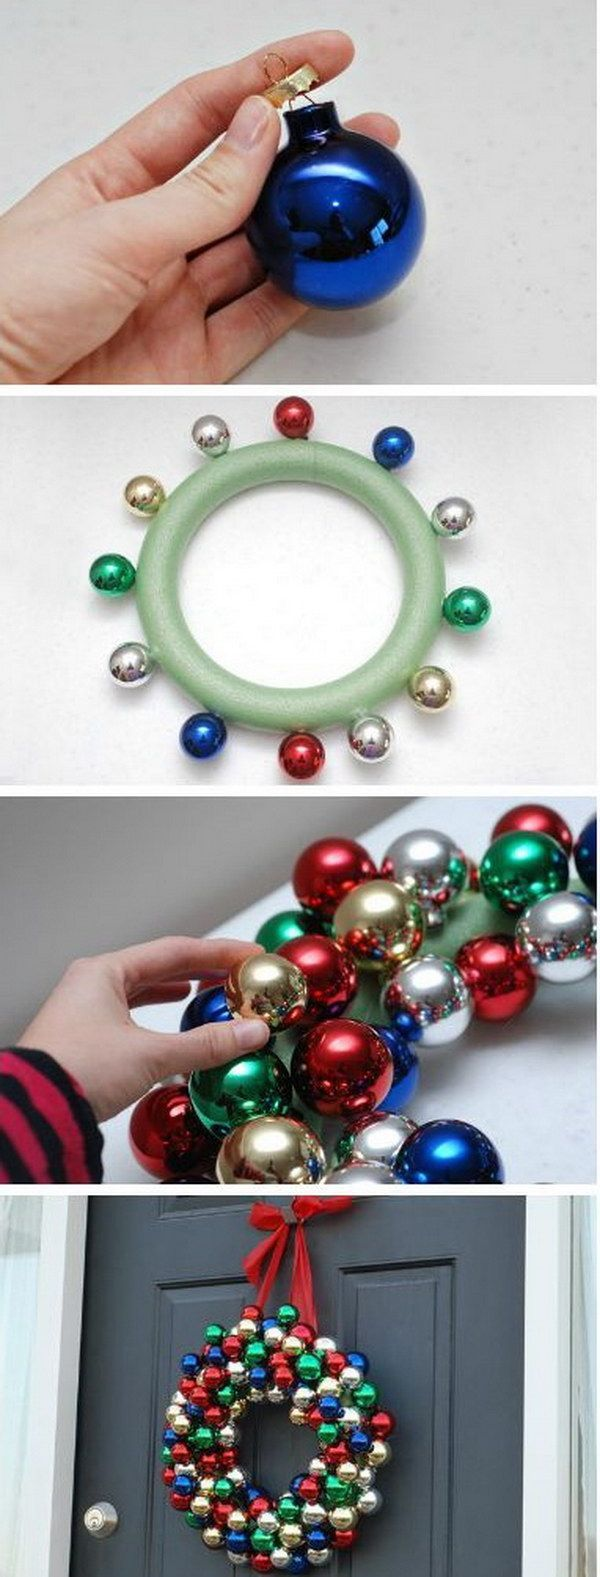 DIY Christmas Ornament Wreath. This holiday wreath is easy to make .. using the wires in the ornaments and perhaps hot glue to attach the ornaments securely.